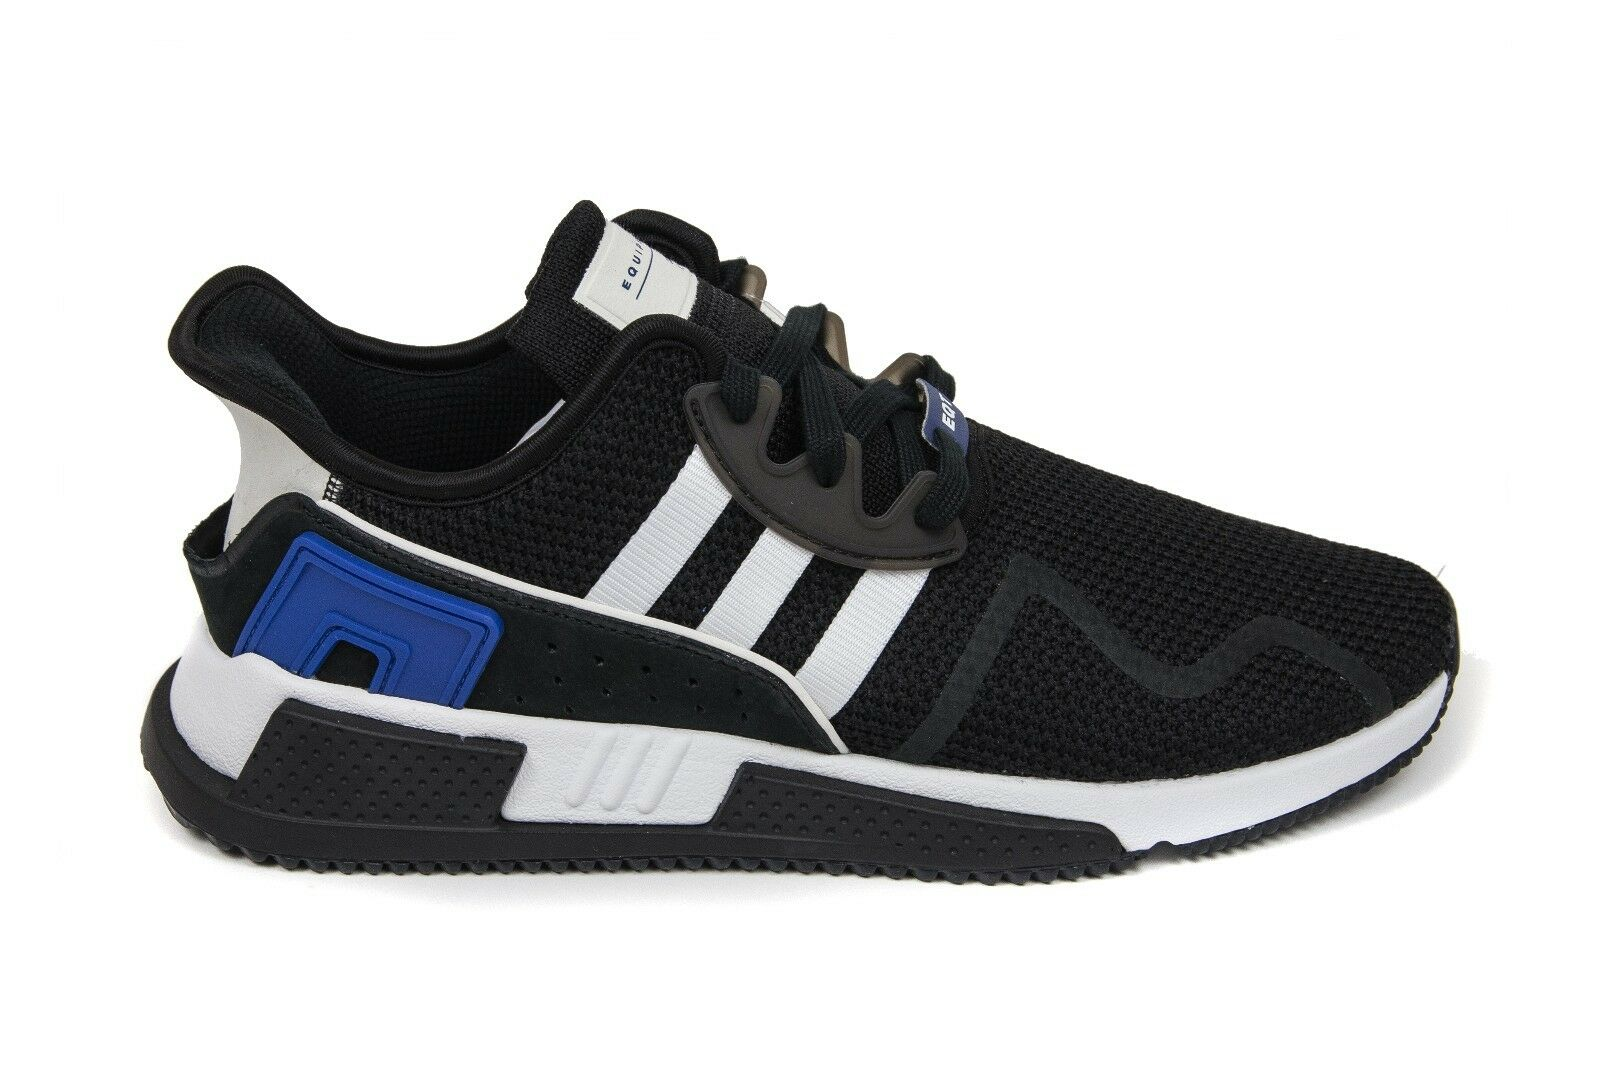 Adidas Originals EQT Cushion ADV in Core Ship Black/White/Royal Blue CQ2374 Free Ship Core 0f1b96